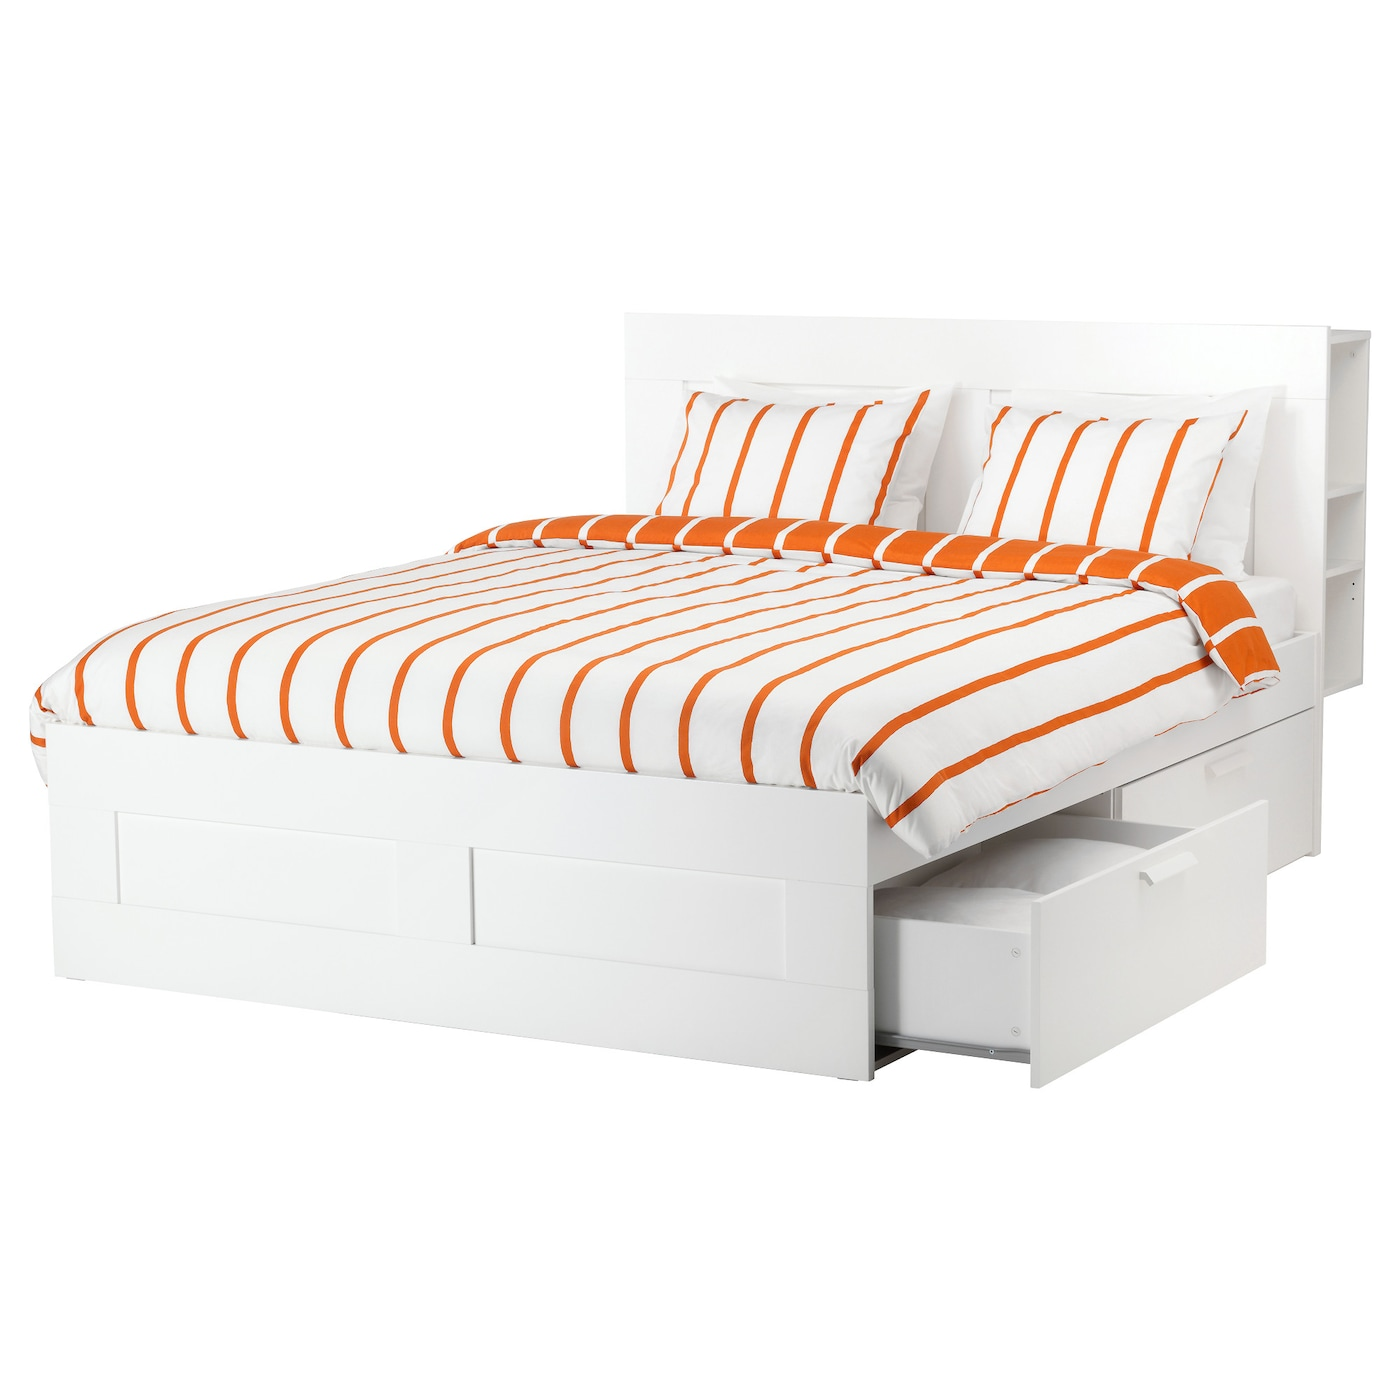 Brimnes bed frame w storage and headboard white lur y for Double bed with storage and mattress